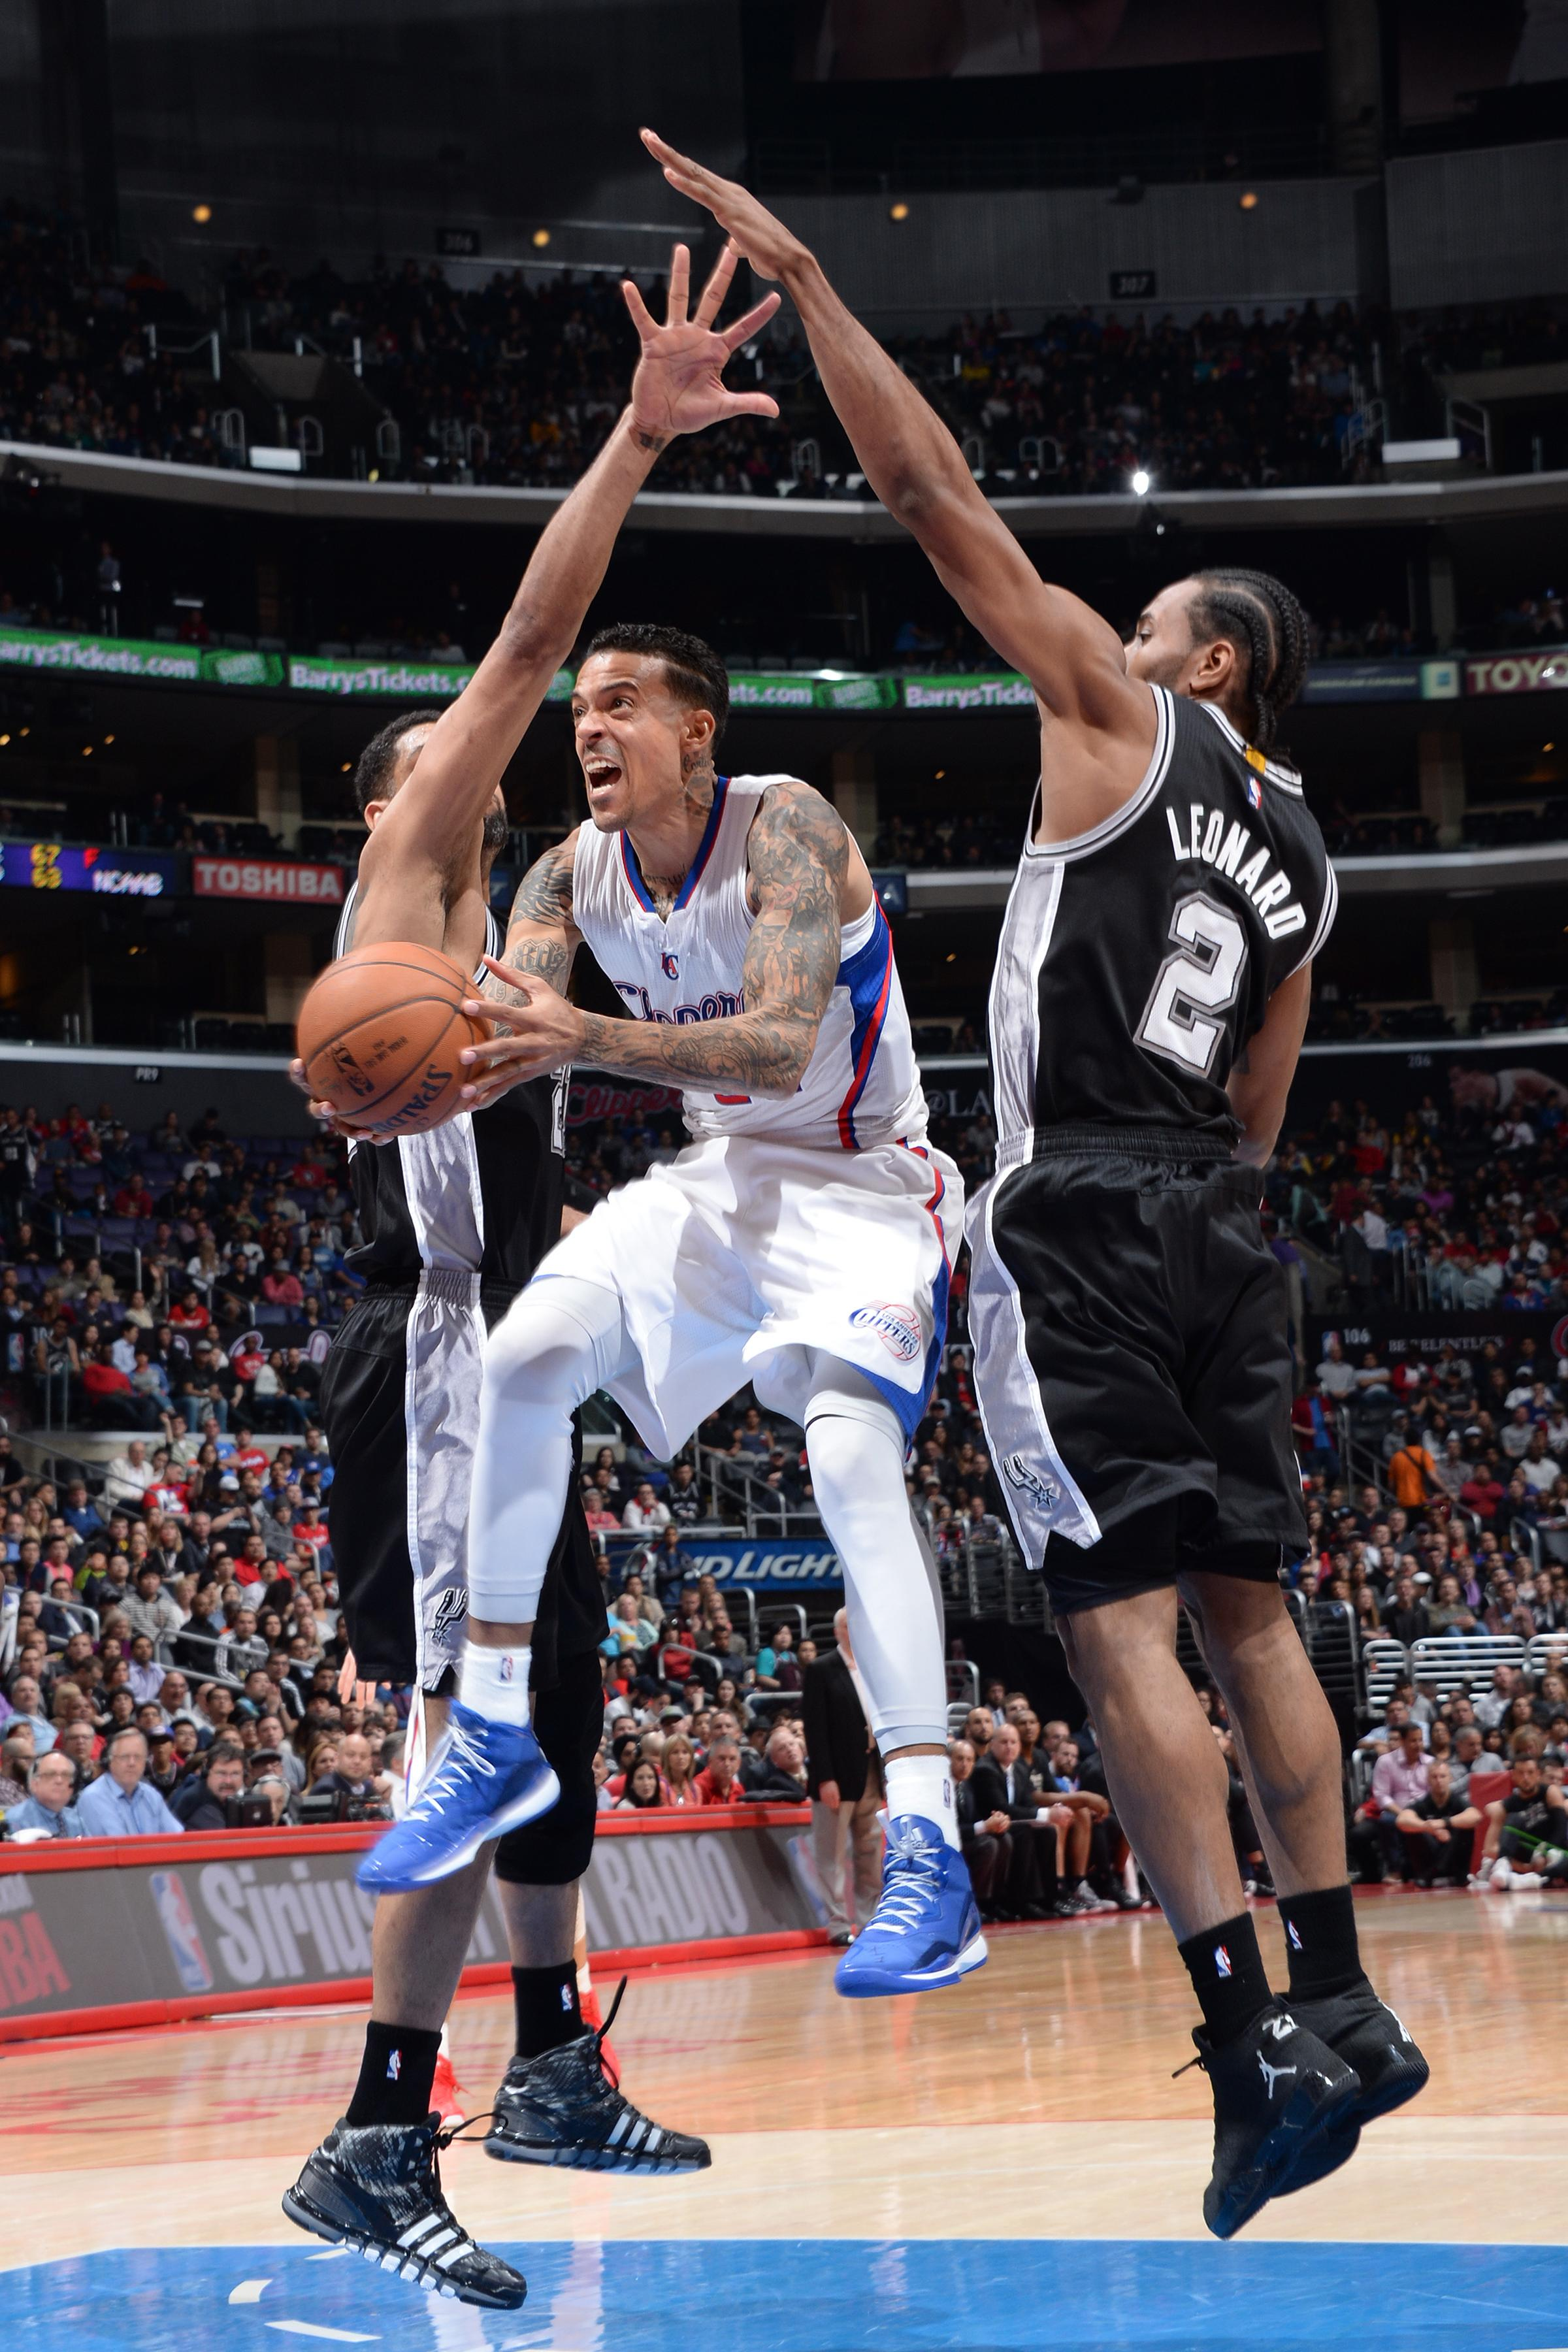 RADIO: Spurs vs. Clippers feels like a Conference Final